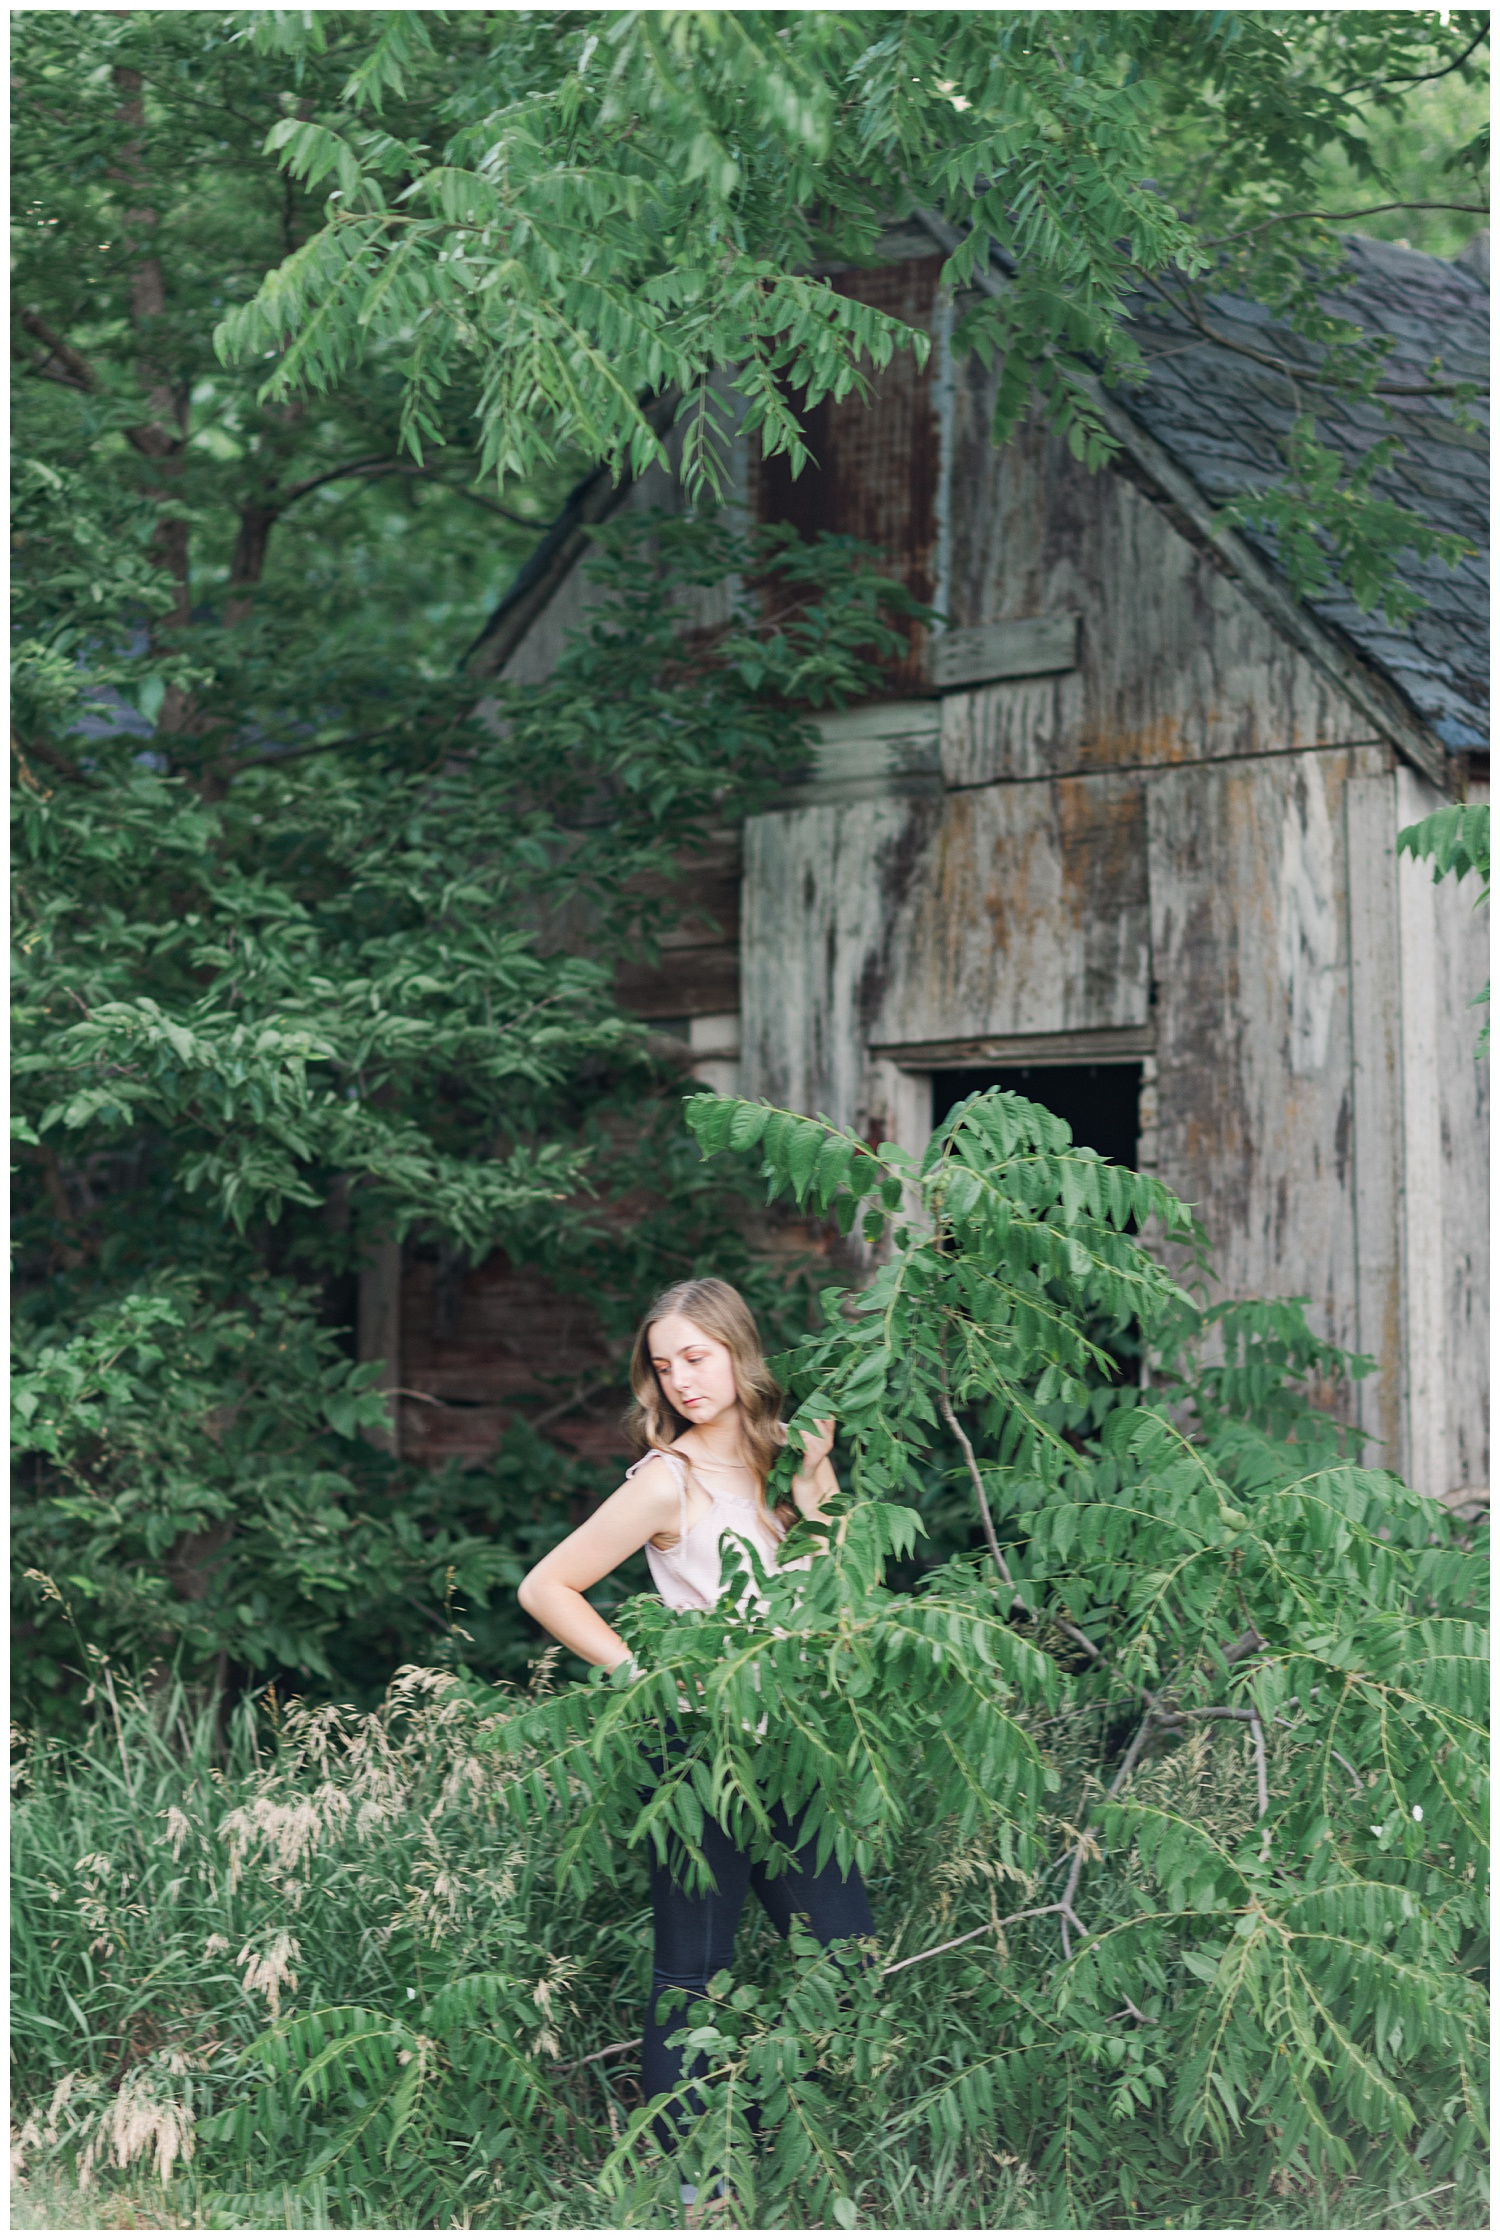 Senior Taylor looks down as she is surrounded by green foliage with a wood barn in the background | CB Studio